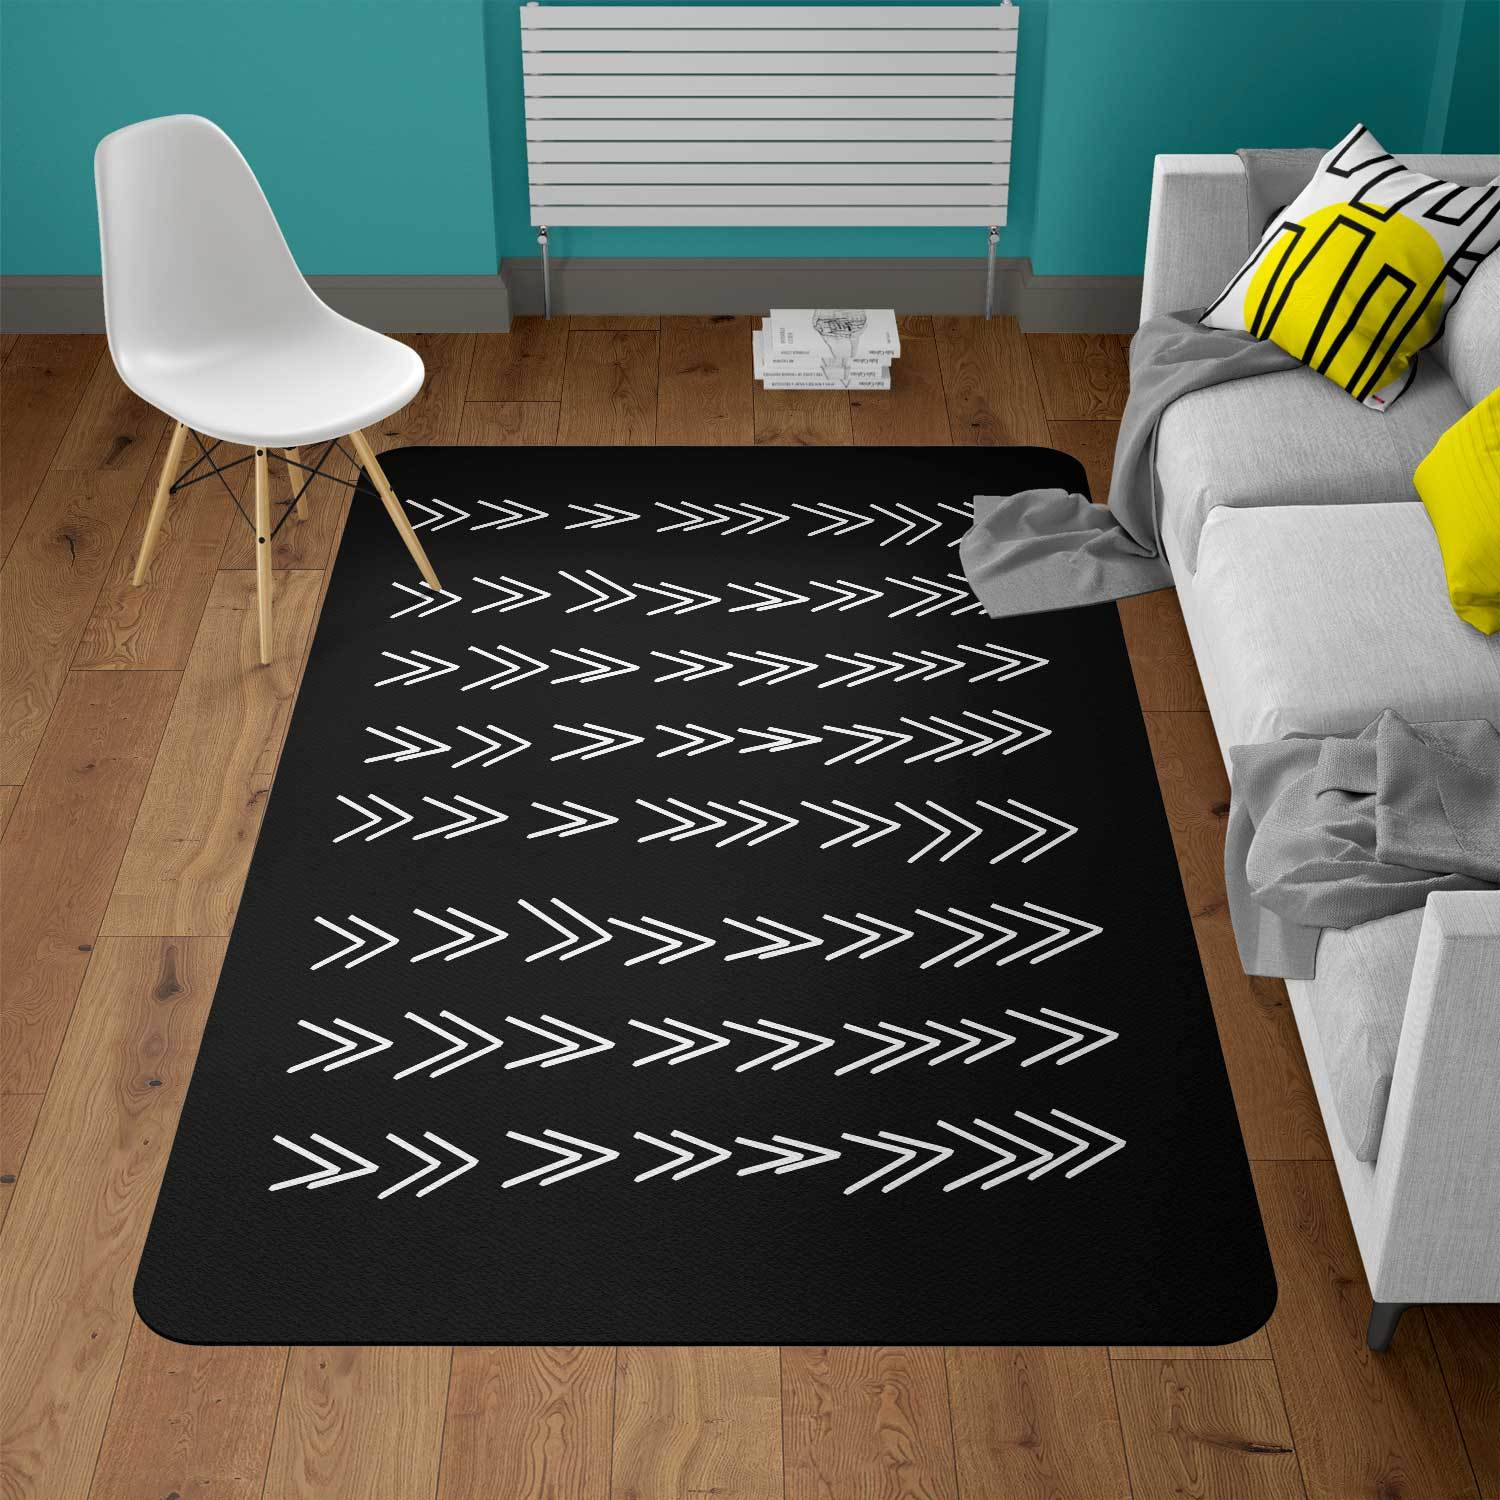 black and white rug - The Gretest